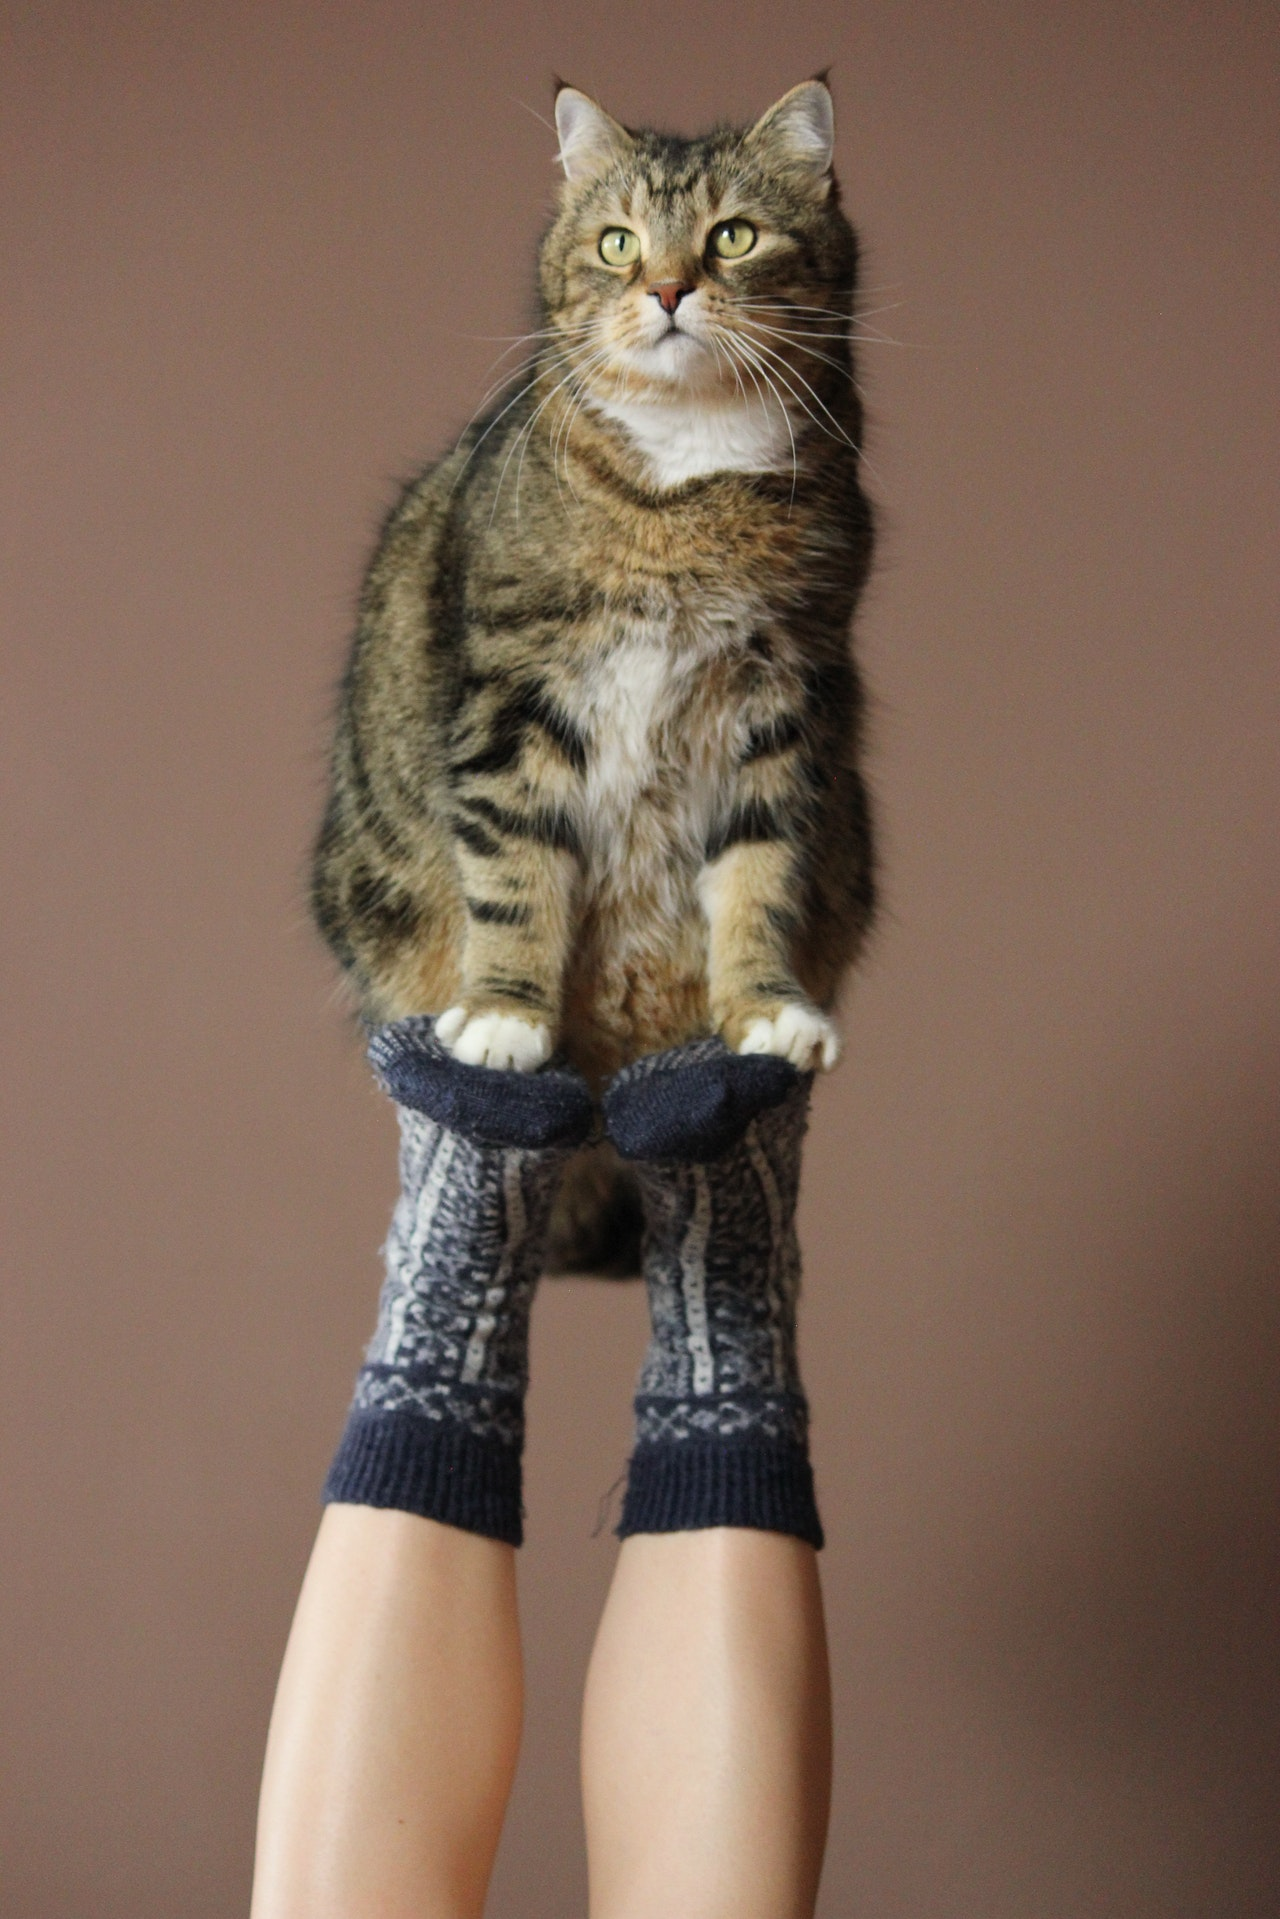 How To Train a Cat: Helpful Tips, Tricks, and Treats!